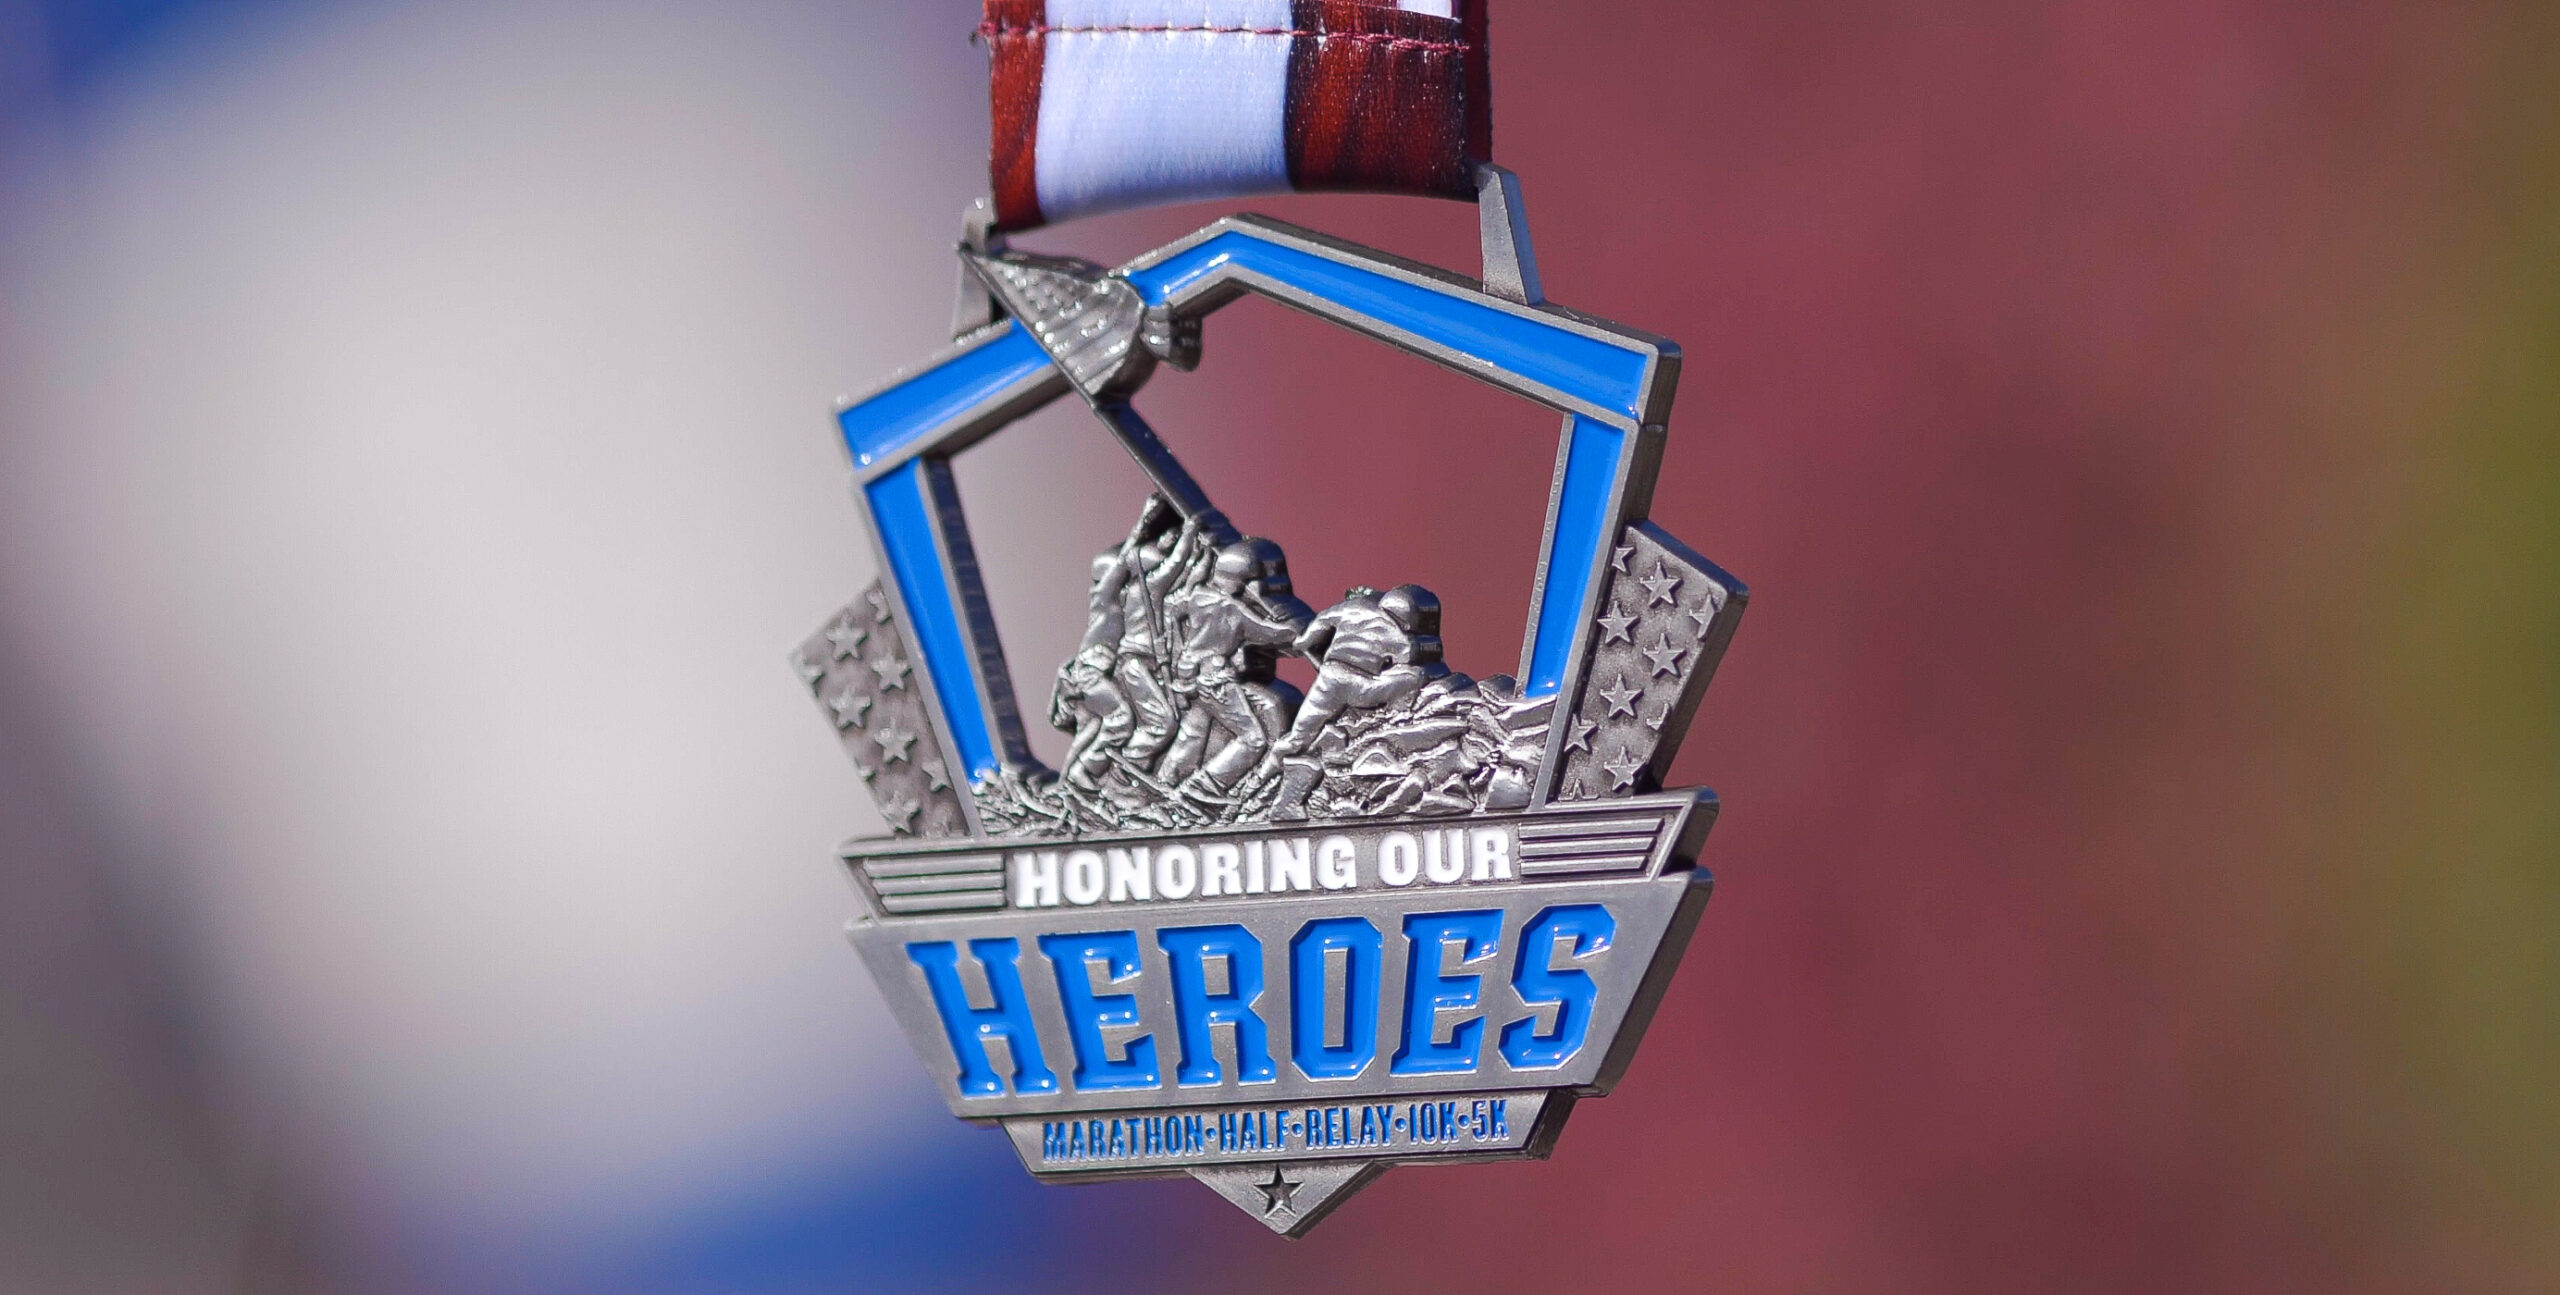 Honoring Our Heroes Marathon Medal Close up